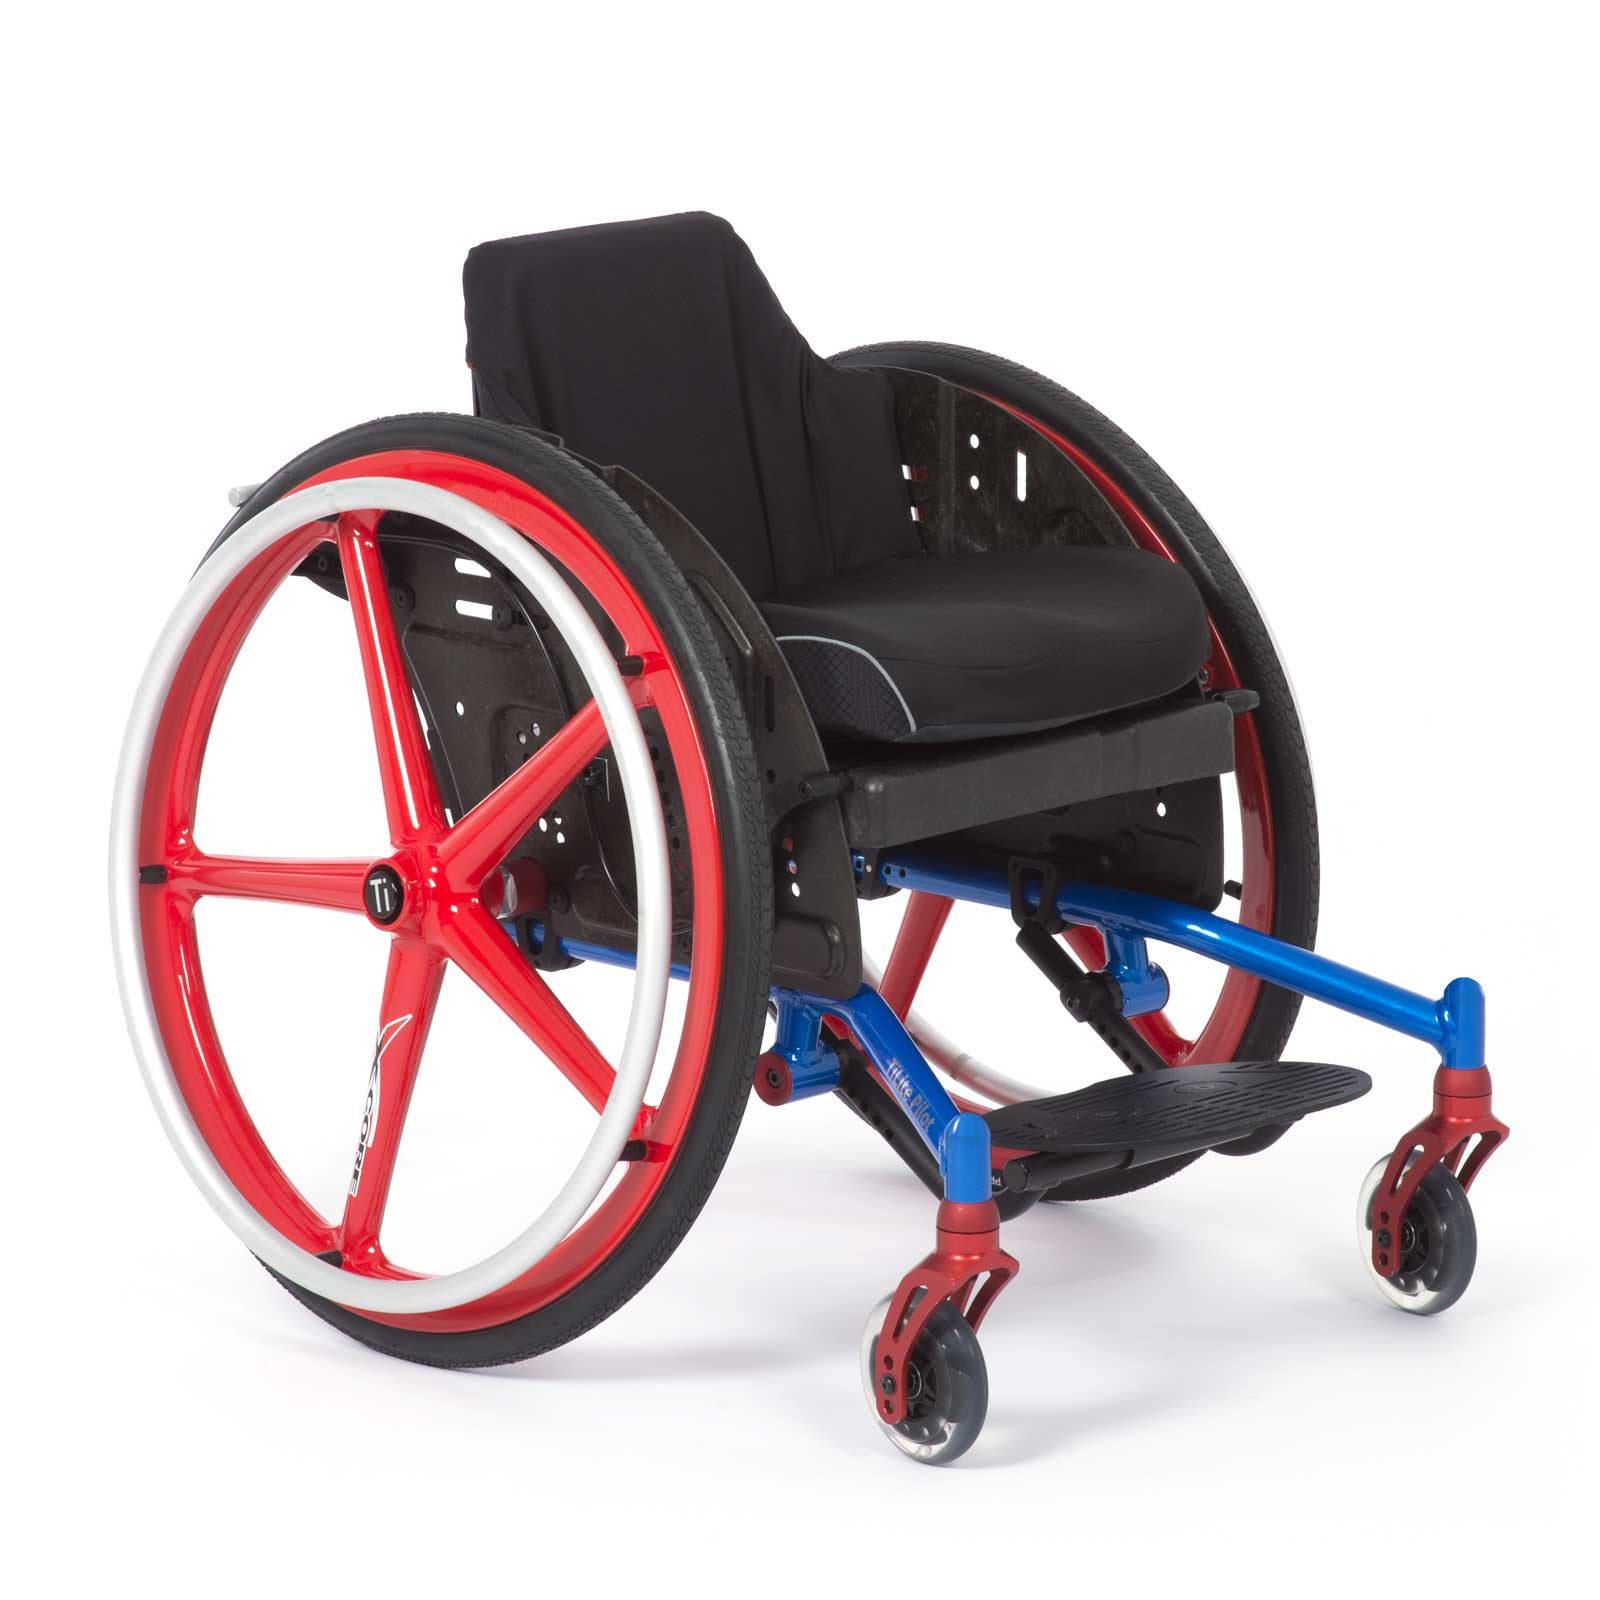 TiLite Pilot paediatric wheelchair product